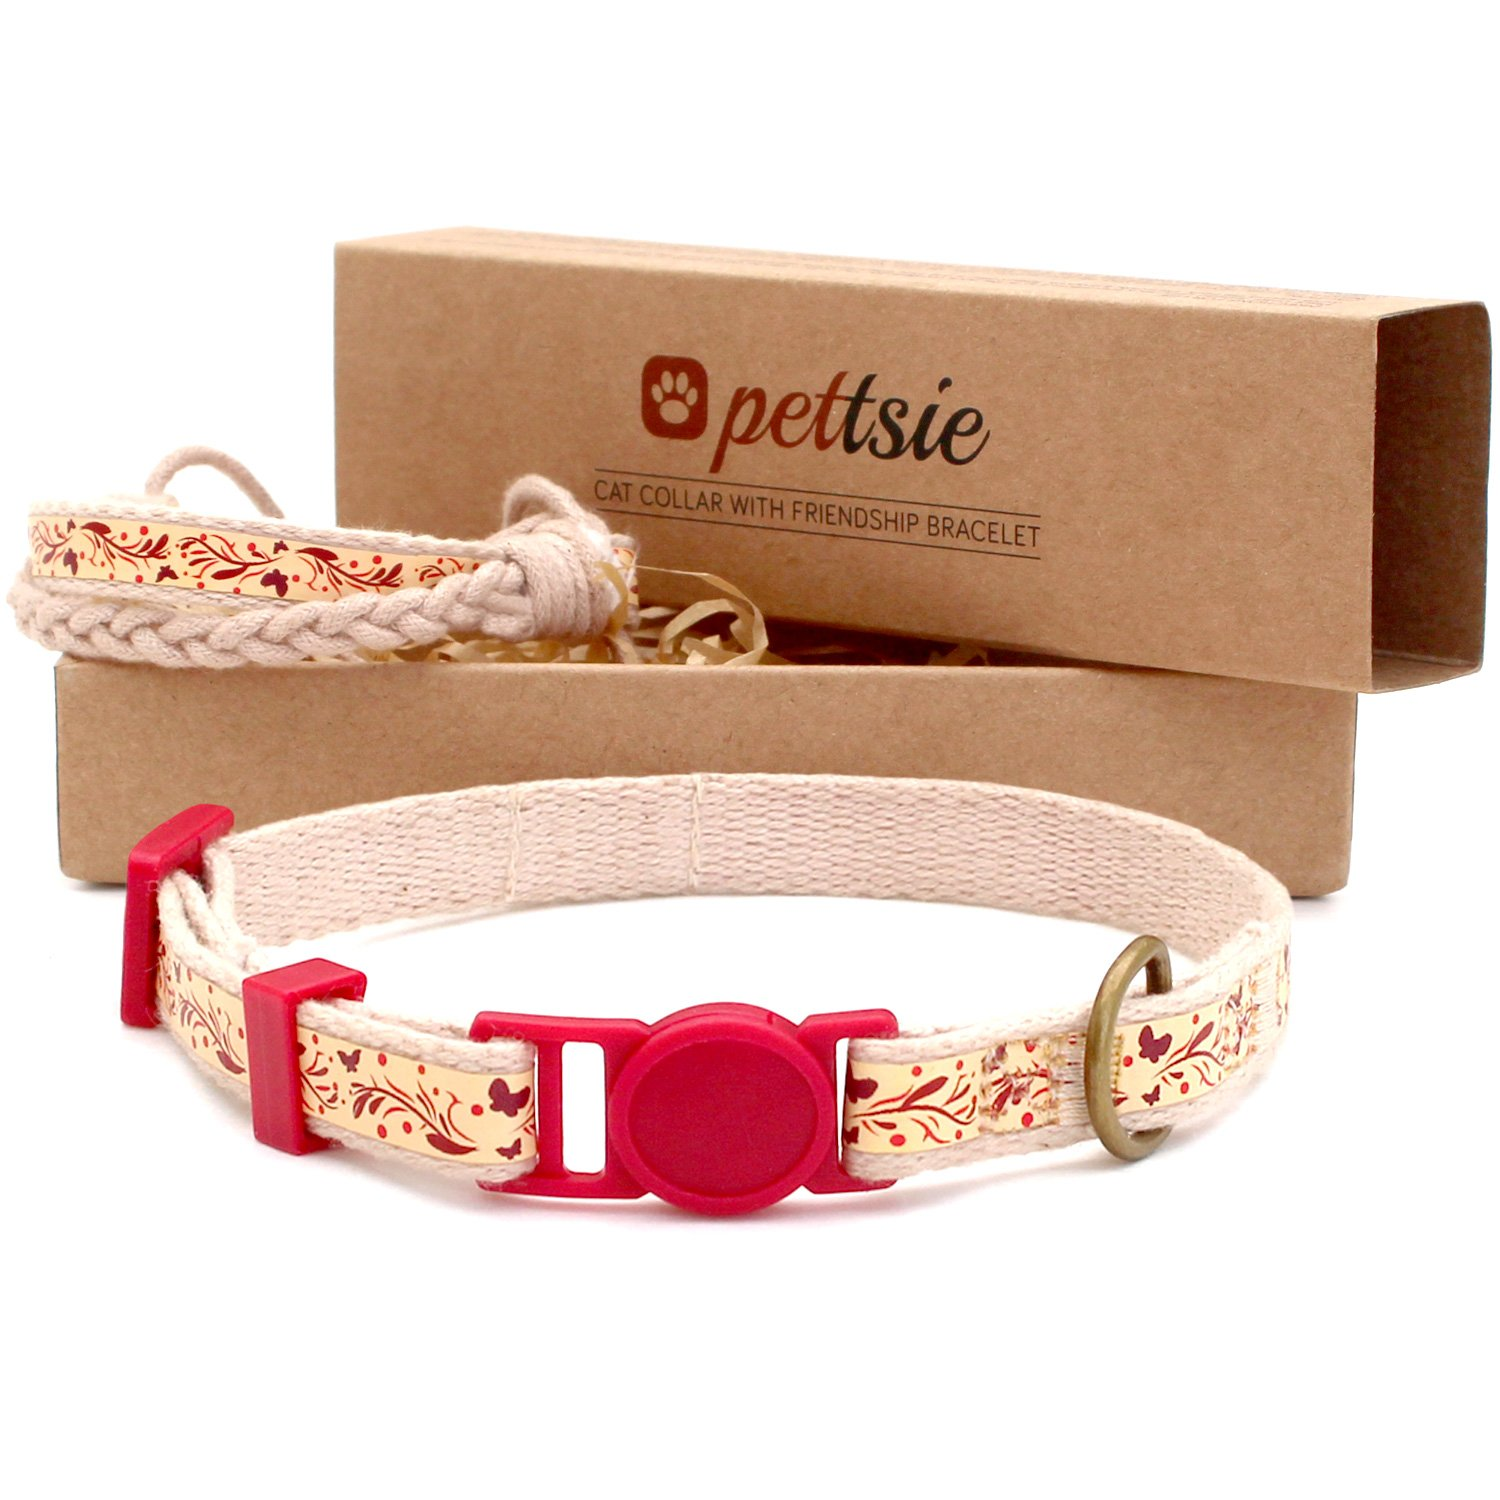 Pettsie Cat Collar Breakaway Safety and Friendship Bracelet for You, Durable 100% Cotton for Extra Safety, D-Ring for Accessories, Comfortable and Soft Cotton, Easy Adjustable 7.5-11.5 Inch